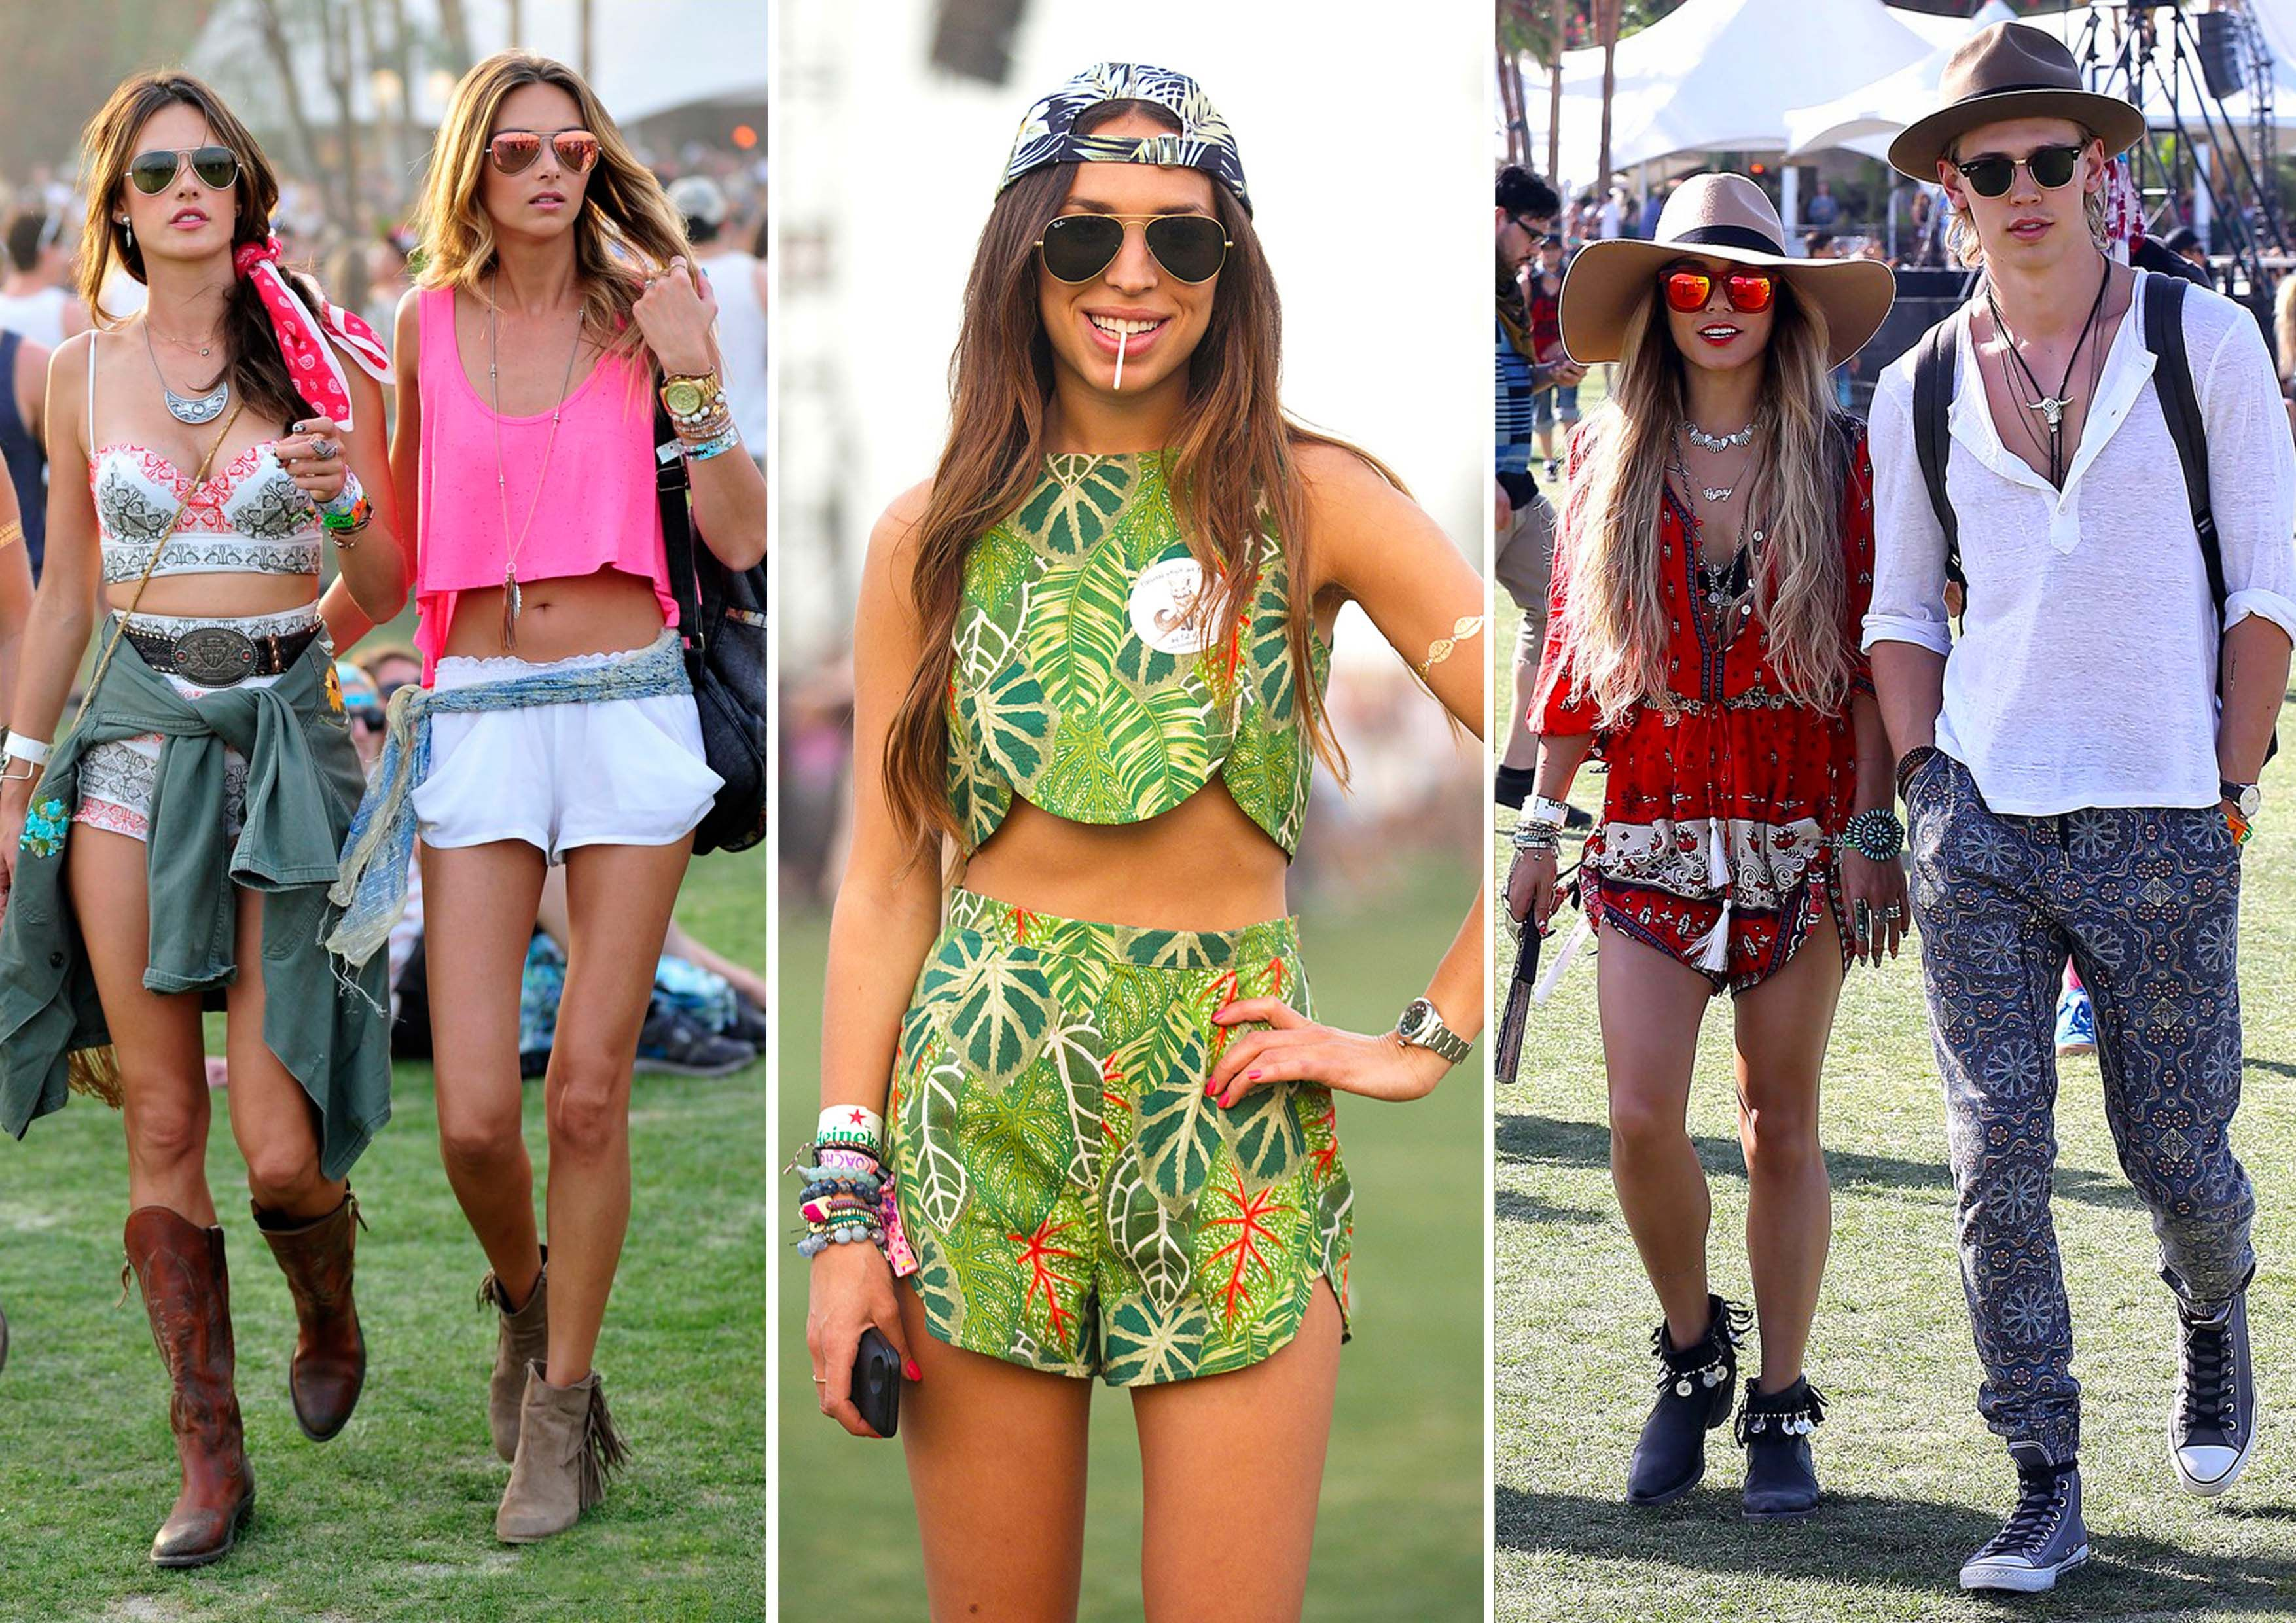 Festival Outfits For Coachella That Ooze A Carefree Vibe